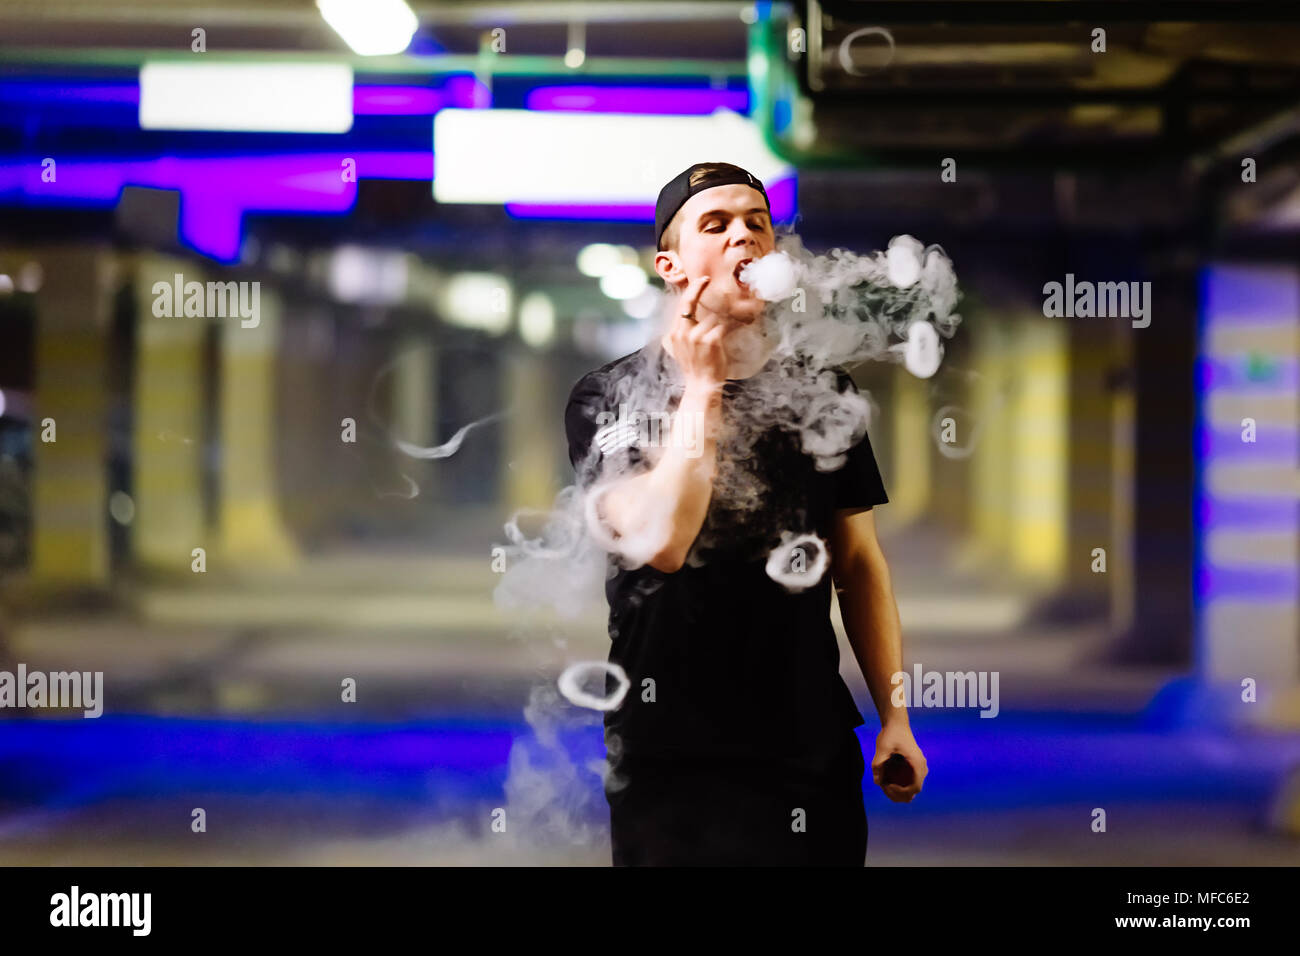 Man in cap smoke an electronic cigarette and releases clouds of vapor performing various kind of vaping tricks - Stock Image